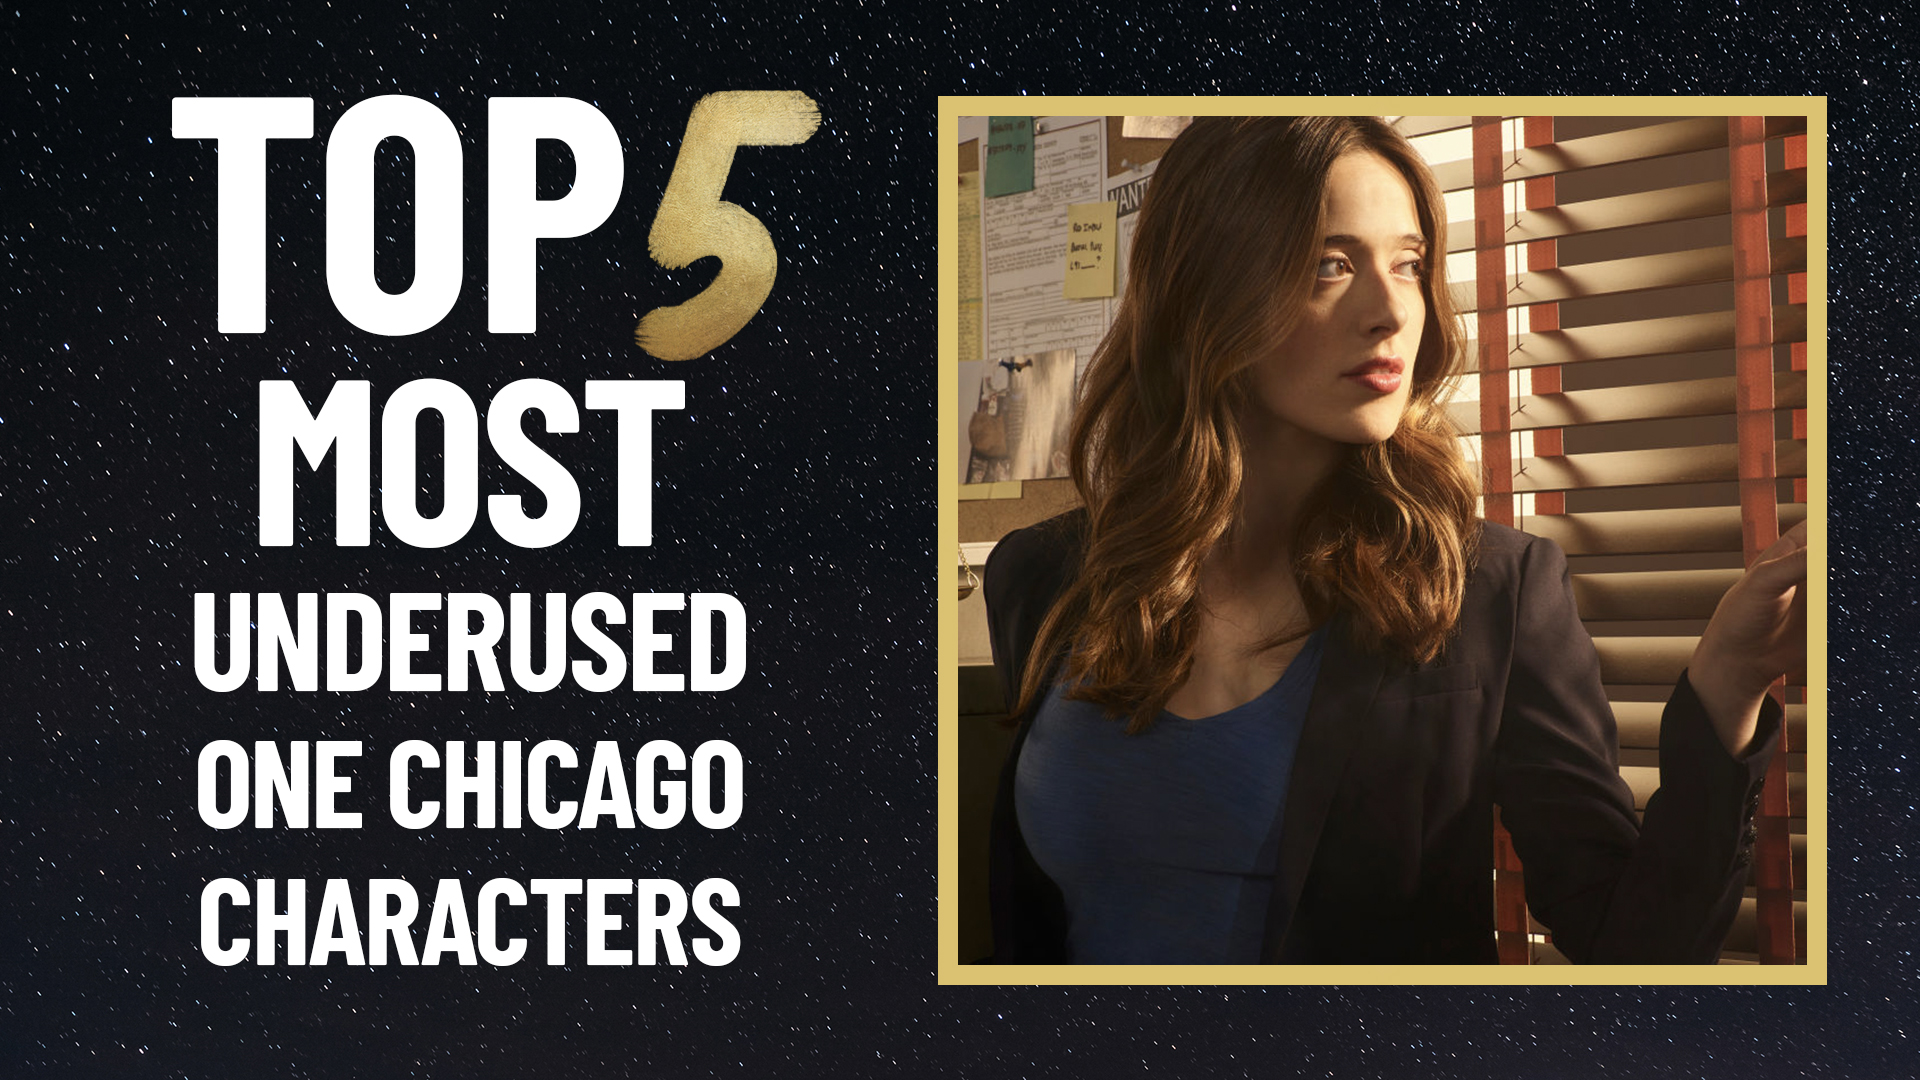 Top 5 Underused One Chicago Characters